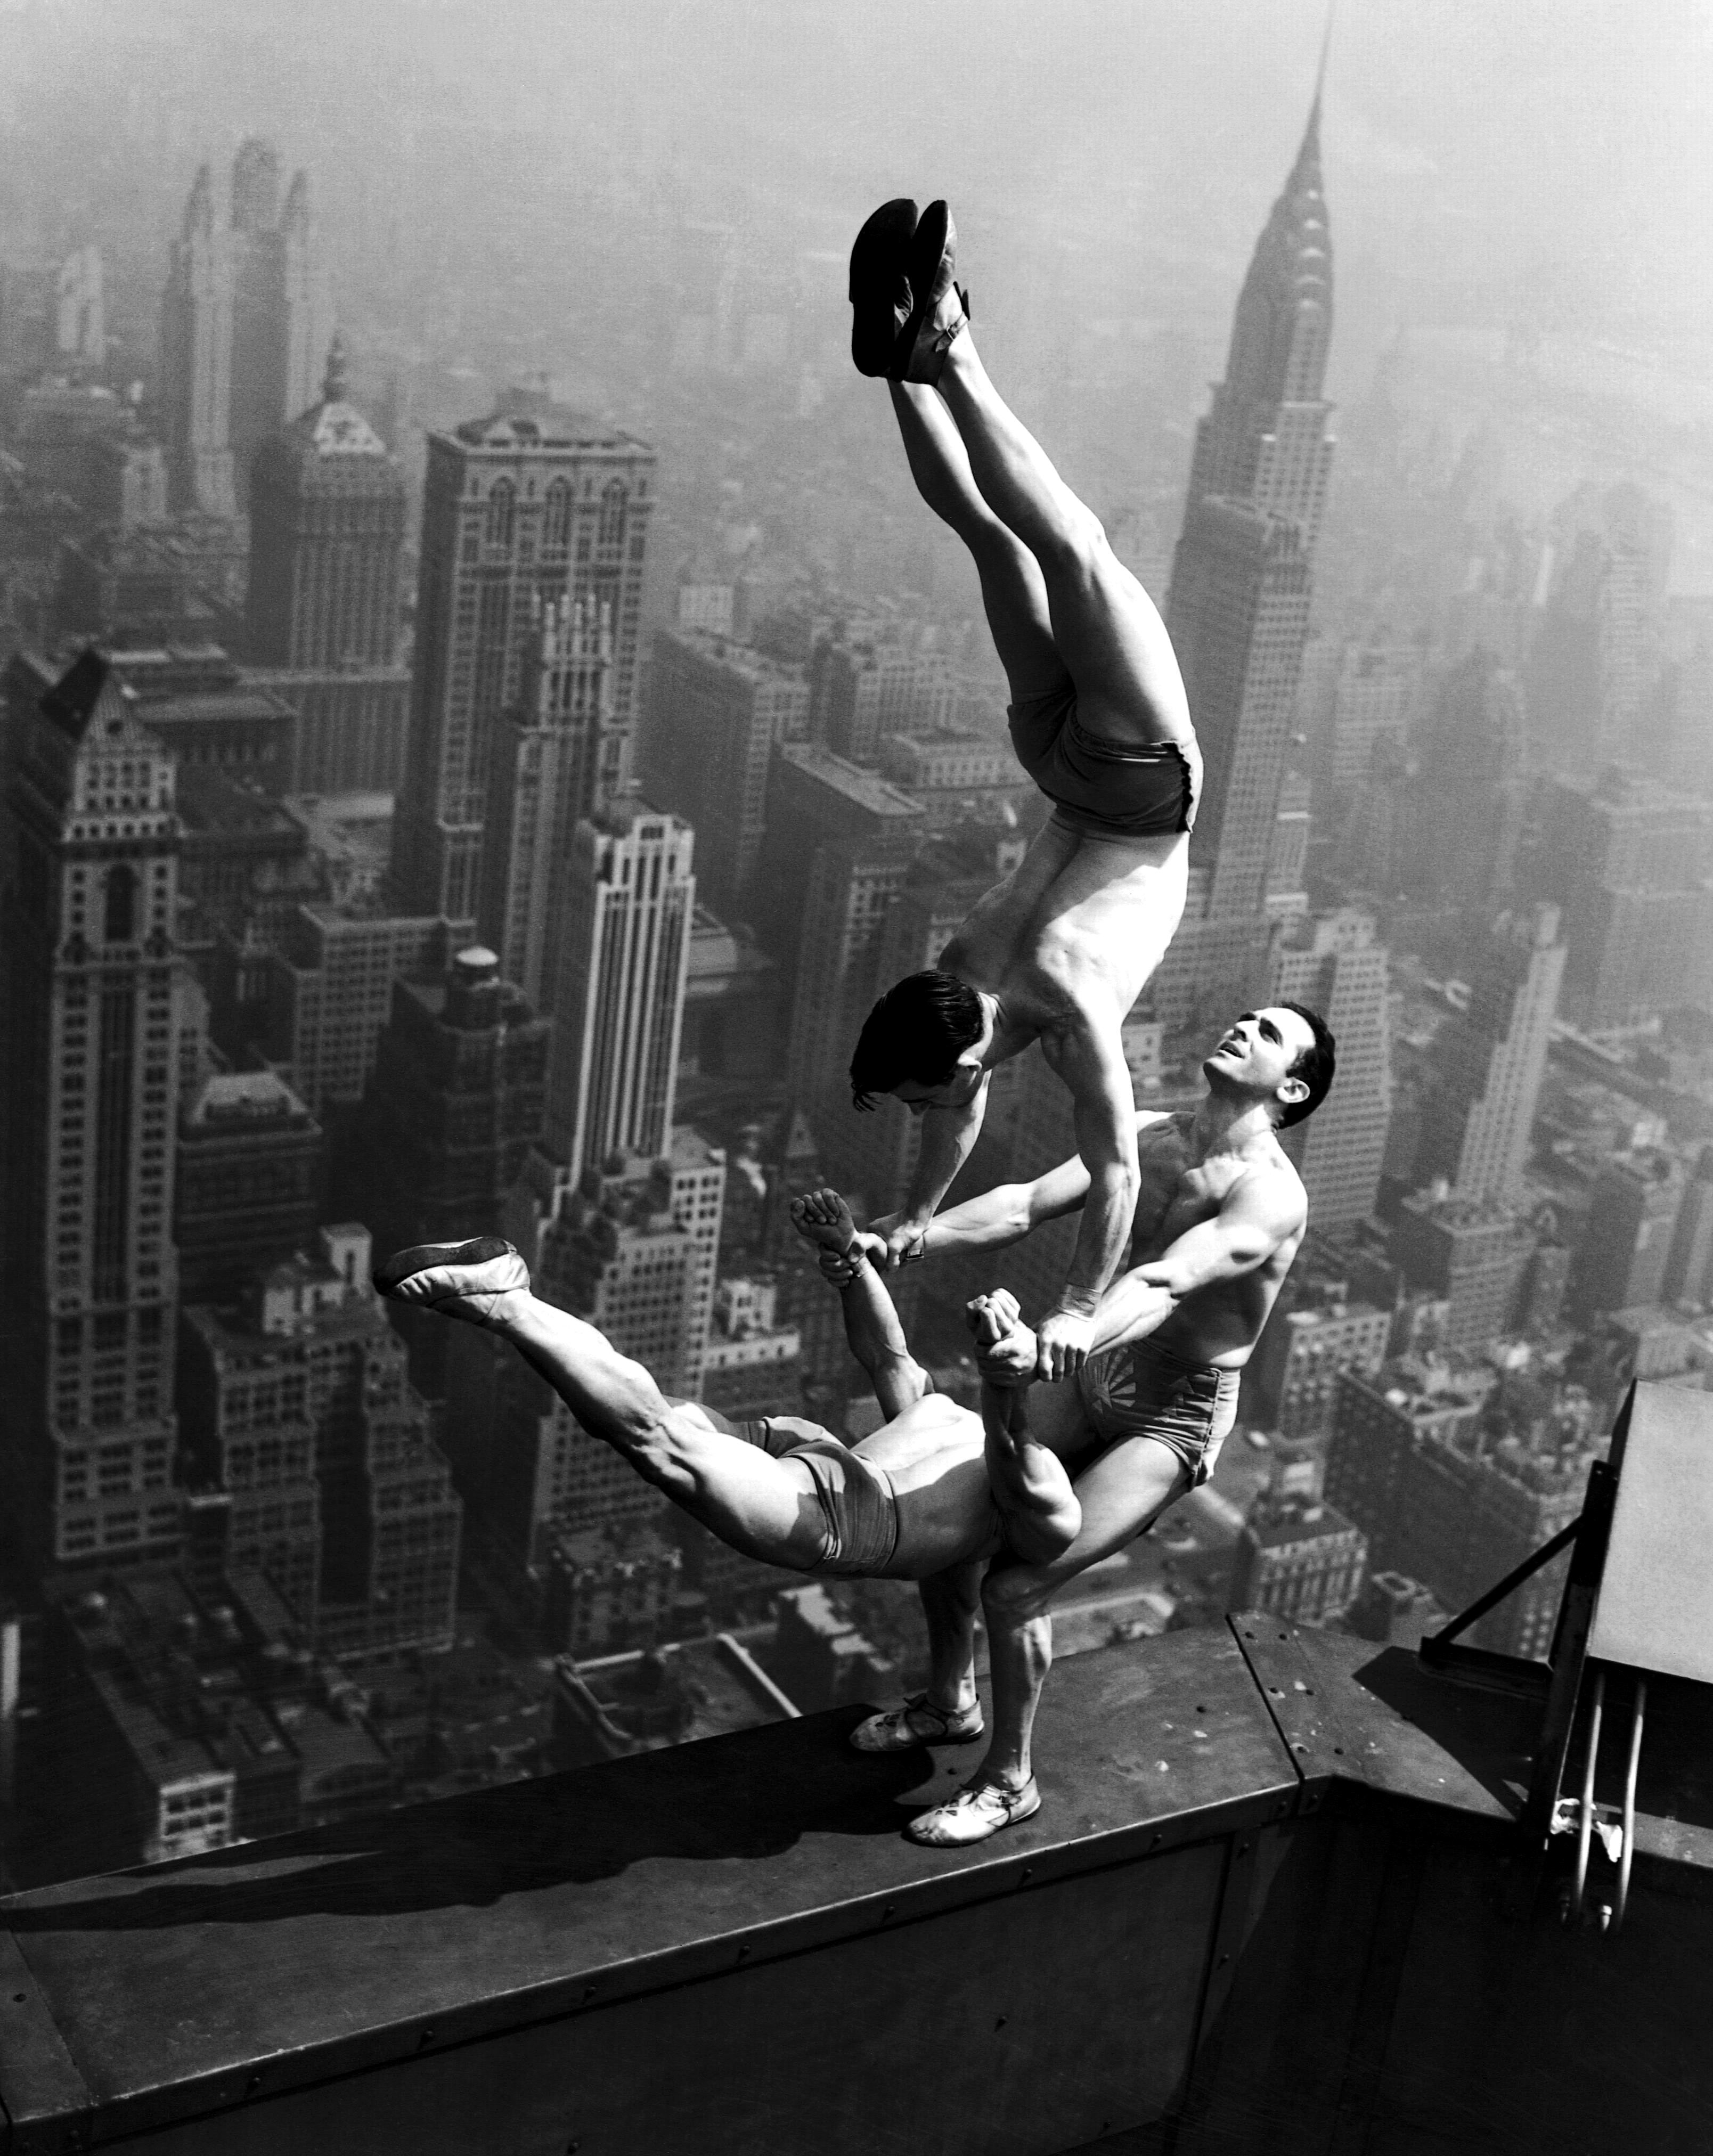 A Stunning Black And White Photo Capturing Acrobats At The